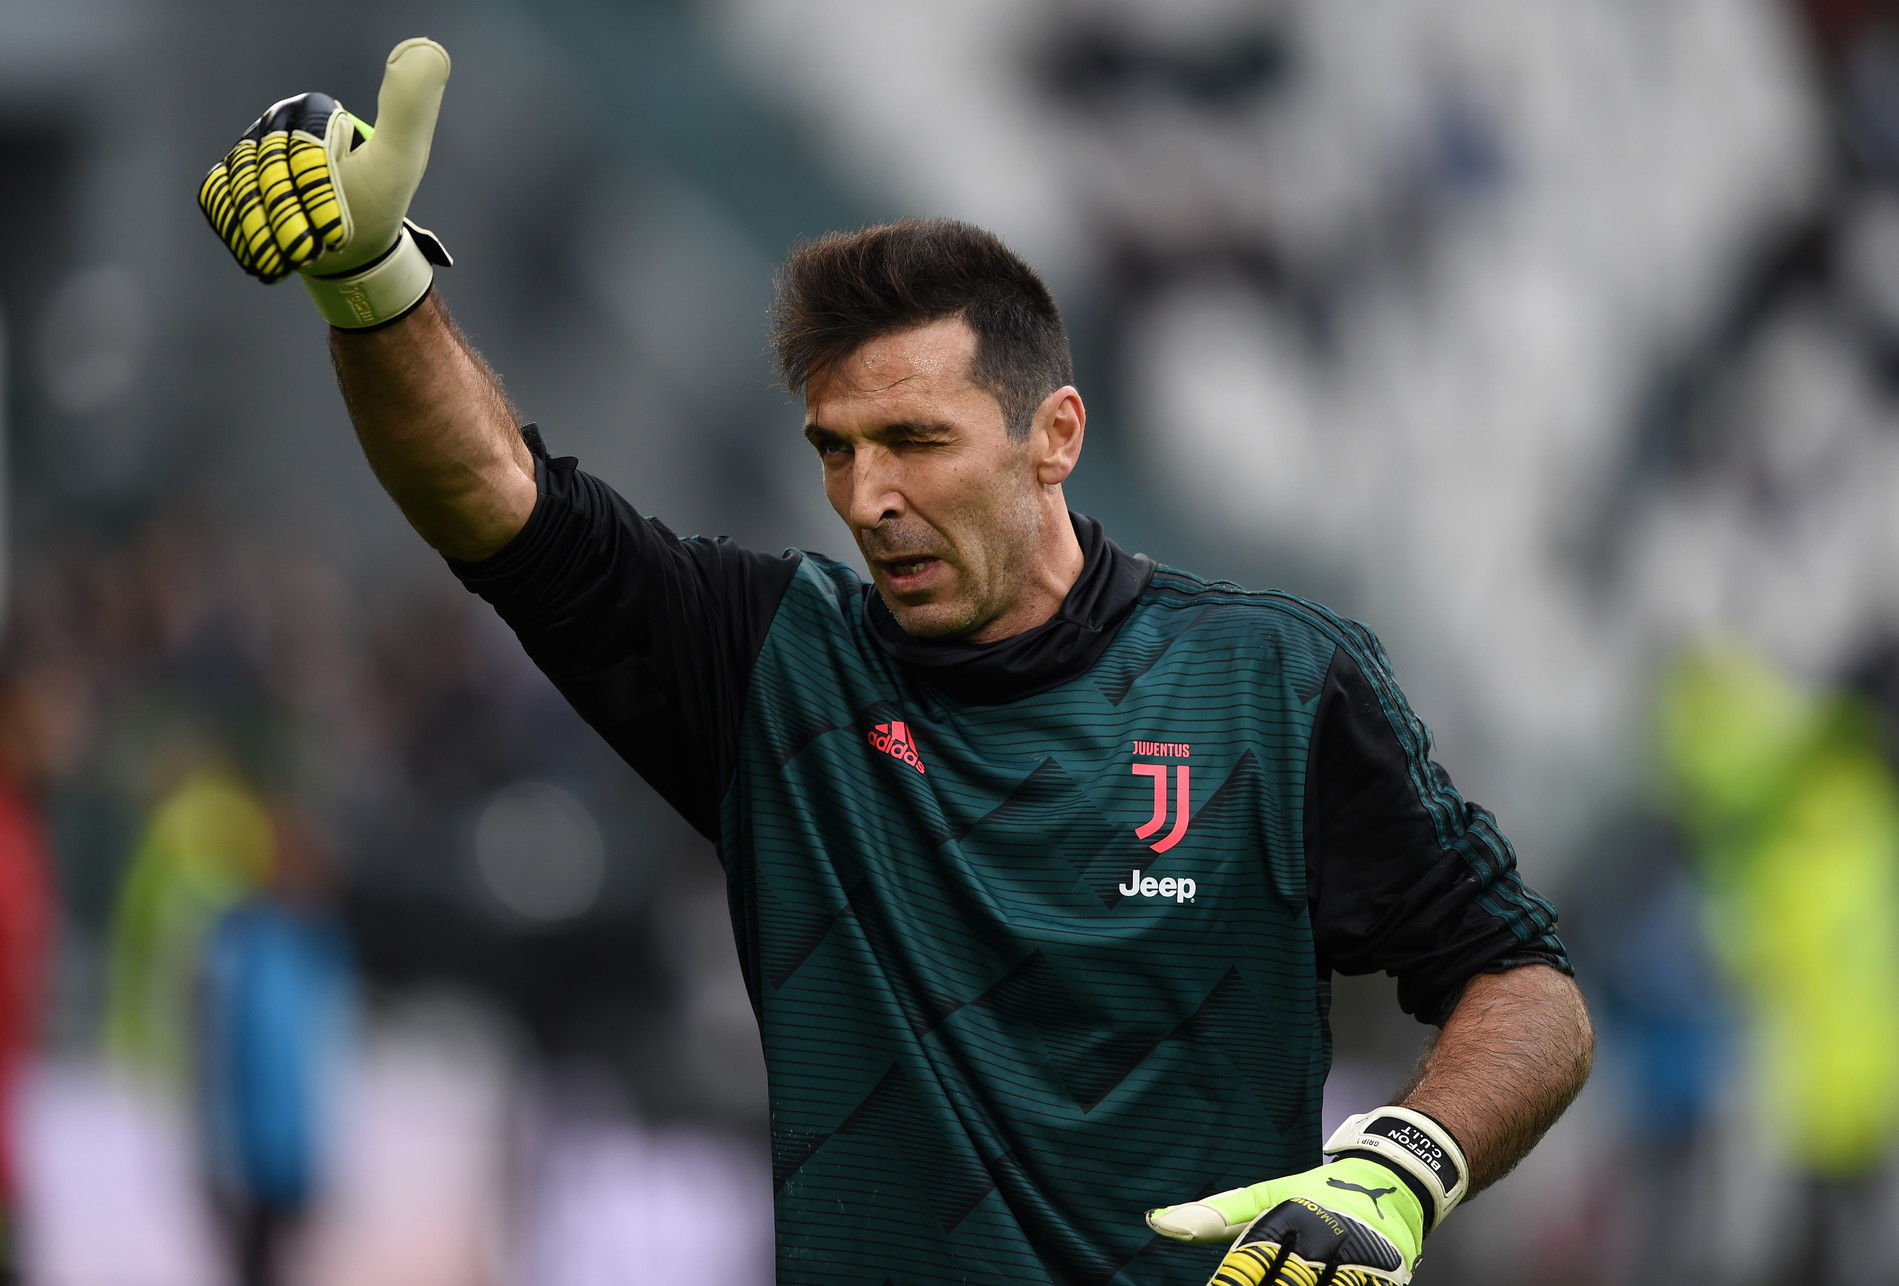 3) Gianluigi Buffon: 3,4 milioni di follower